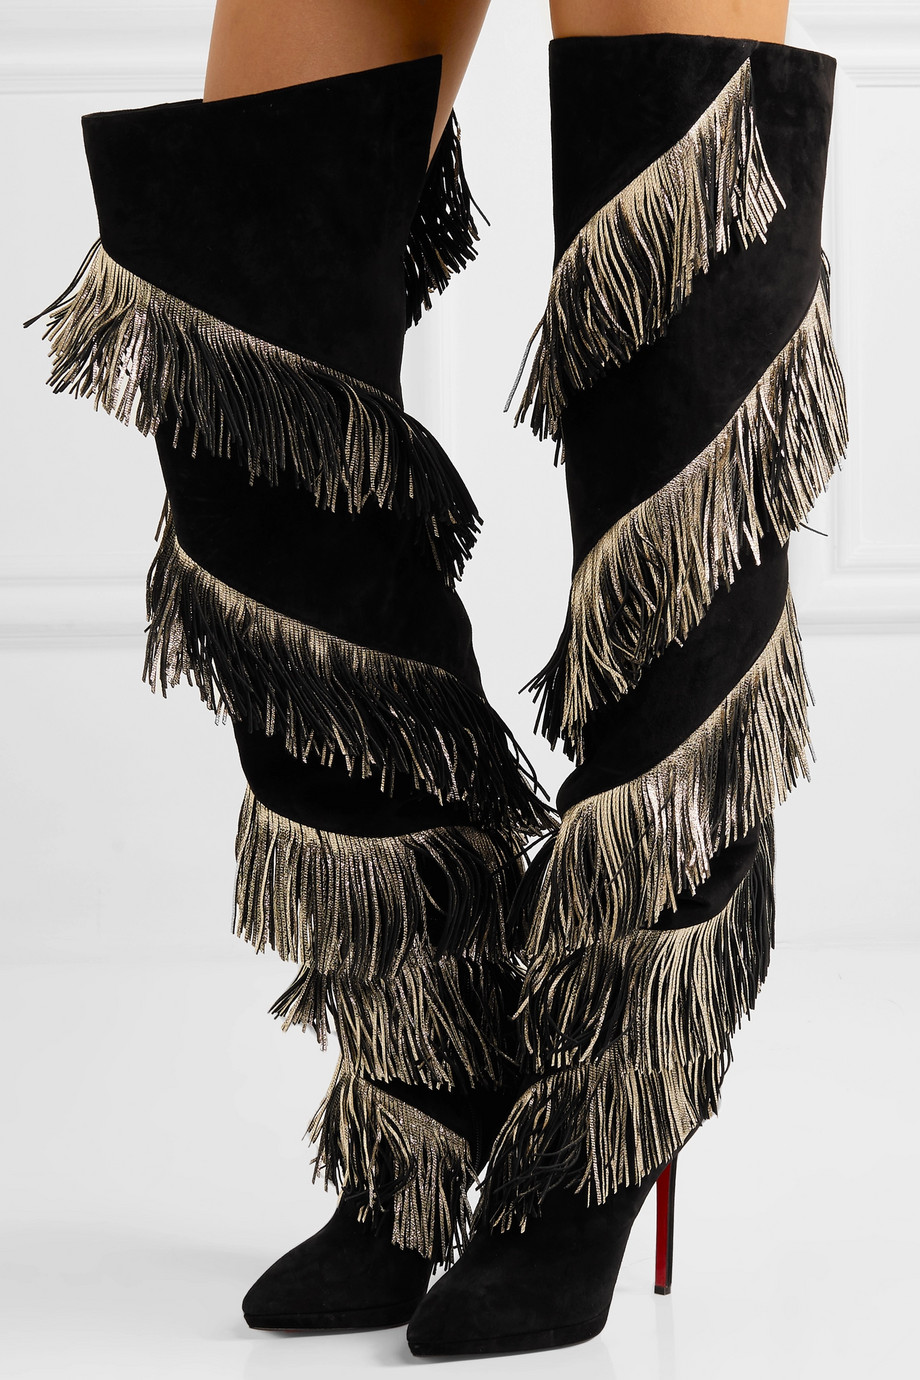 Christian Louboutin Bolcheva 120 fringed suede over-the-knee boots